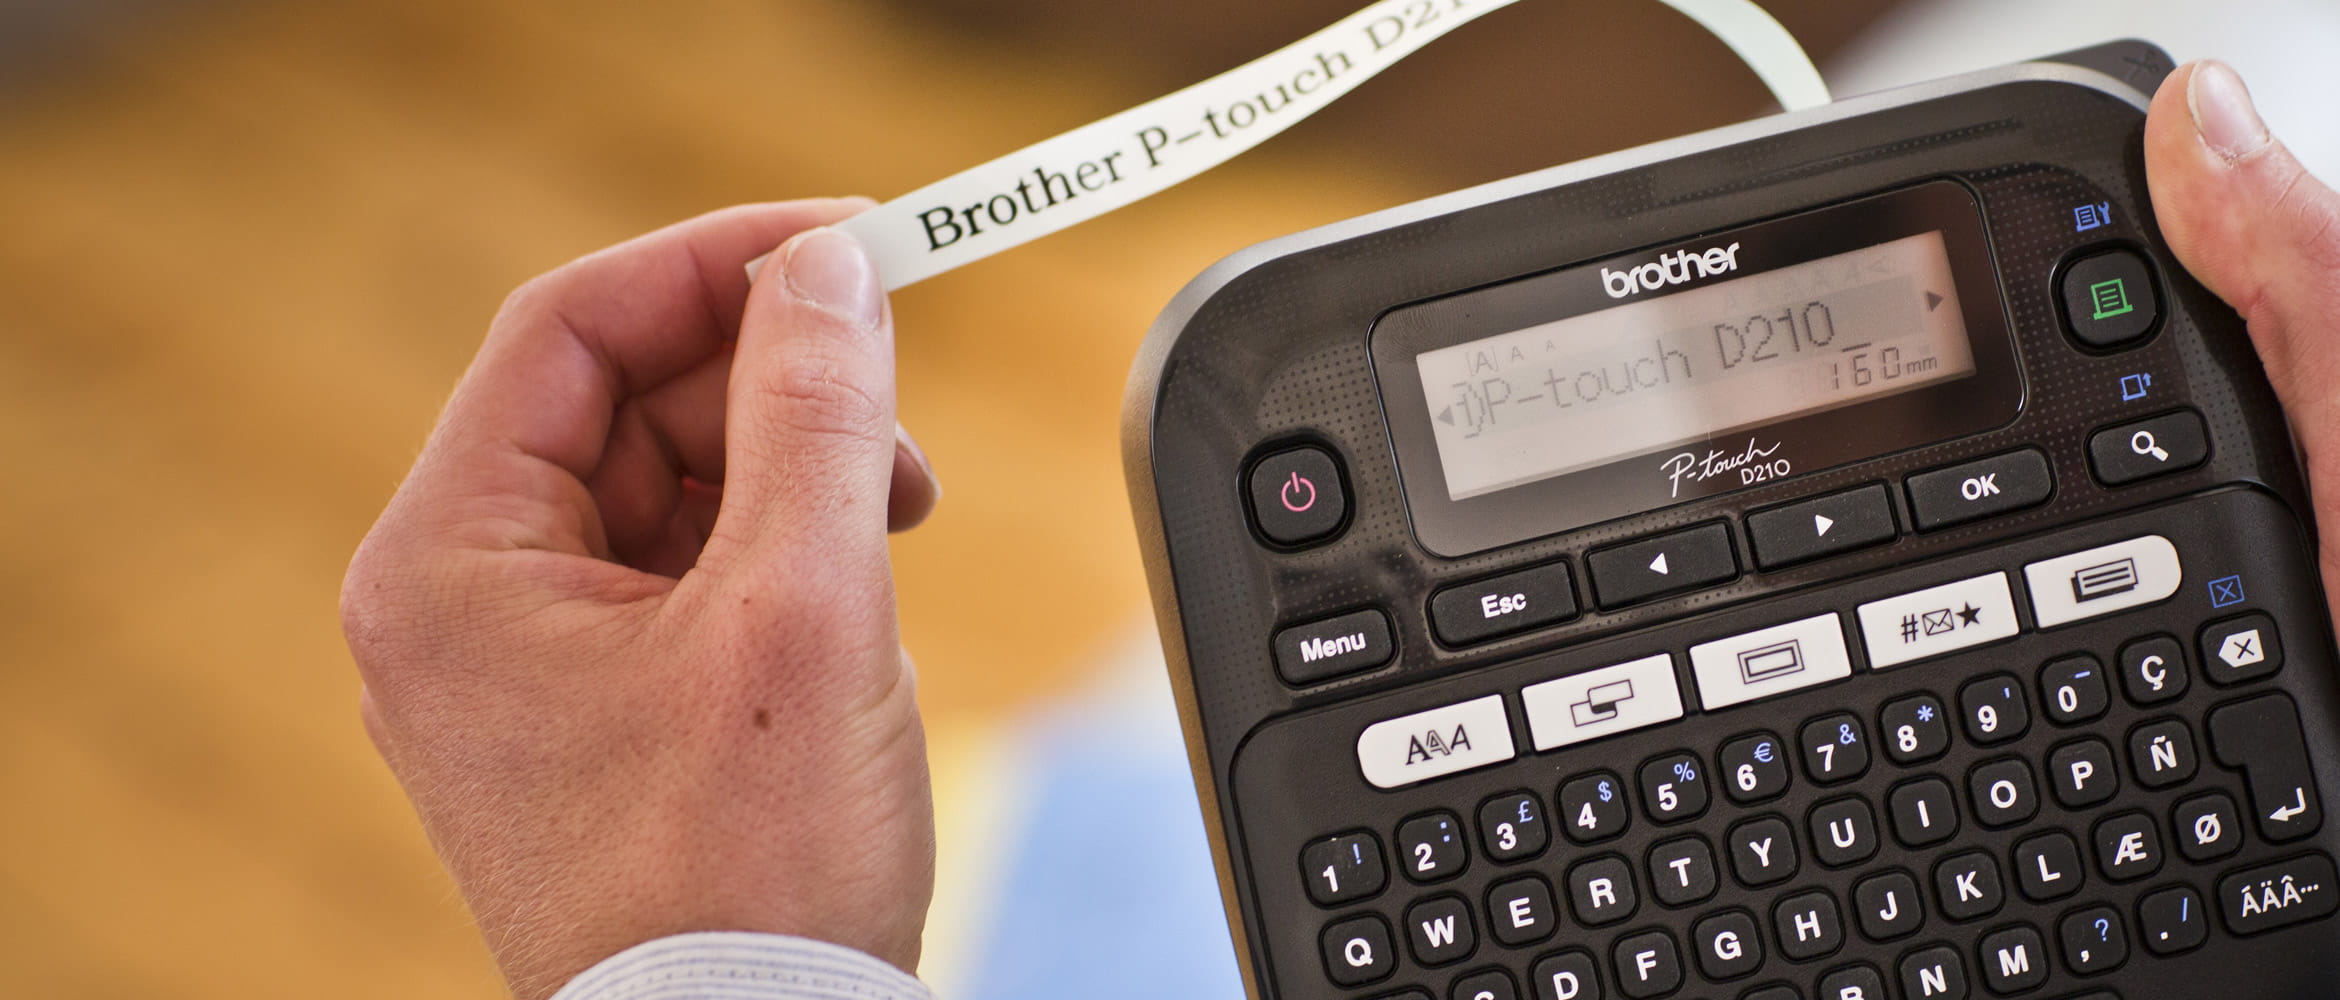 Brother-workplace-image